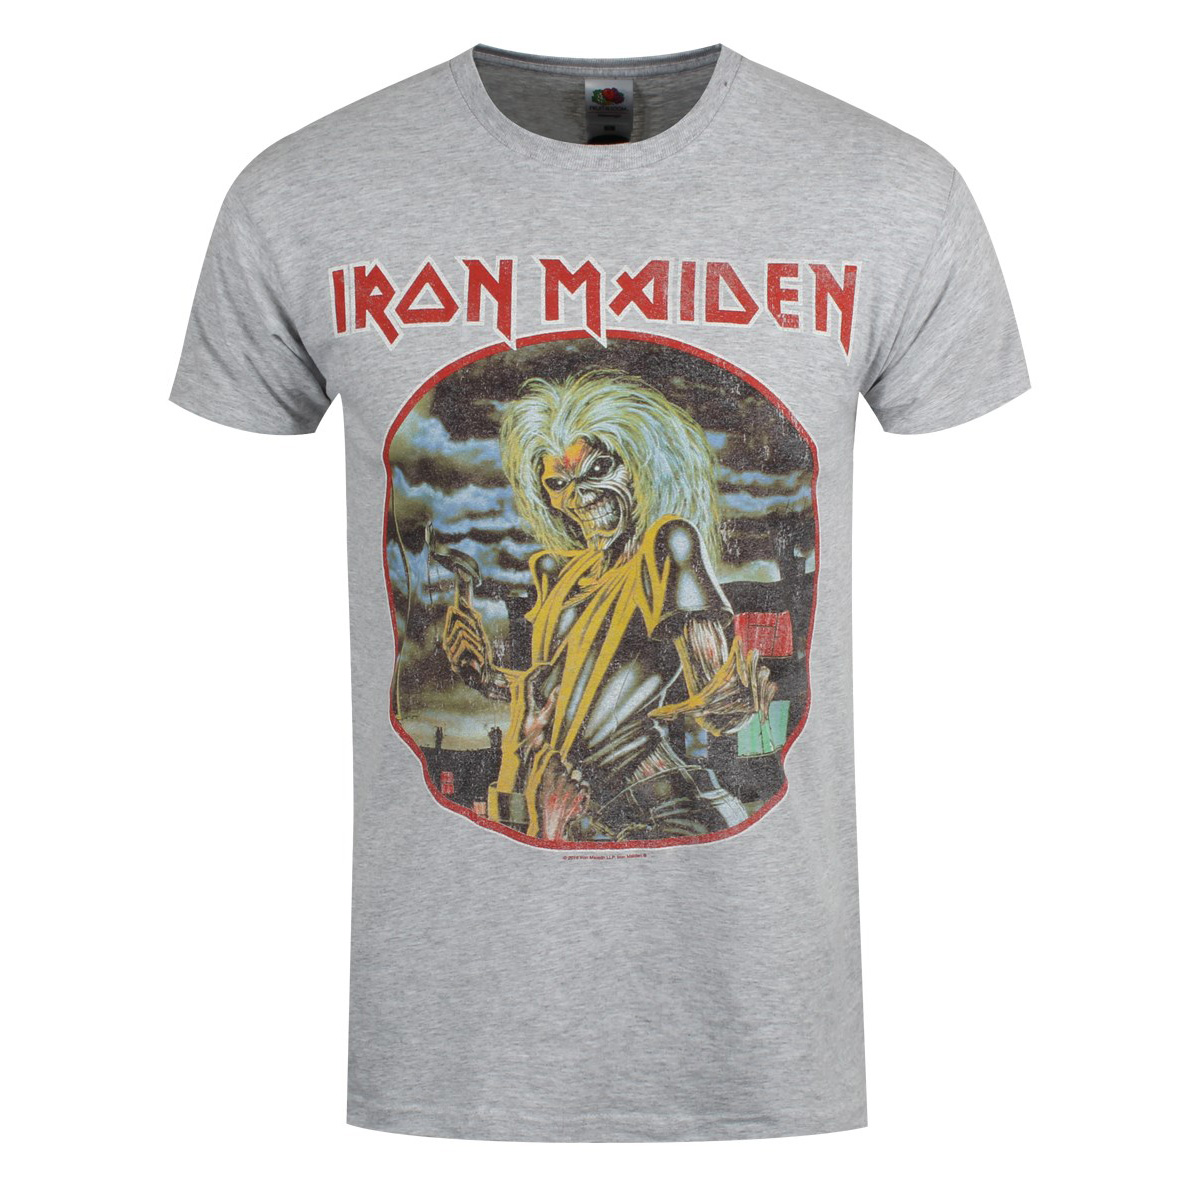 3a08480c5f0 Details about Official Iron Maiden Killers Circle Rock Band T-Shirt